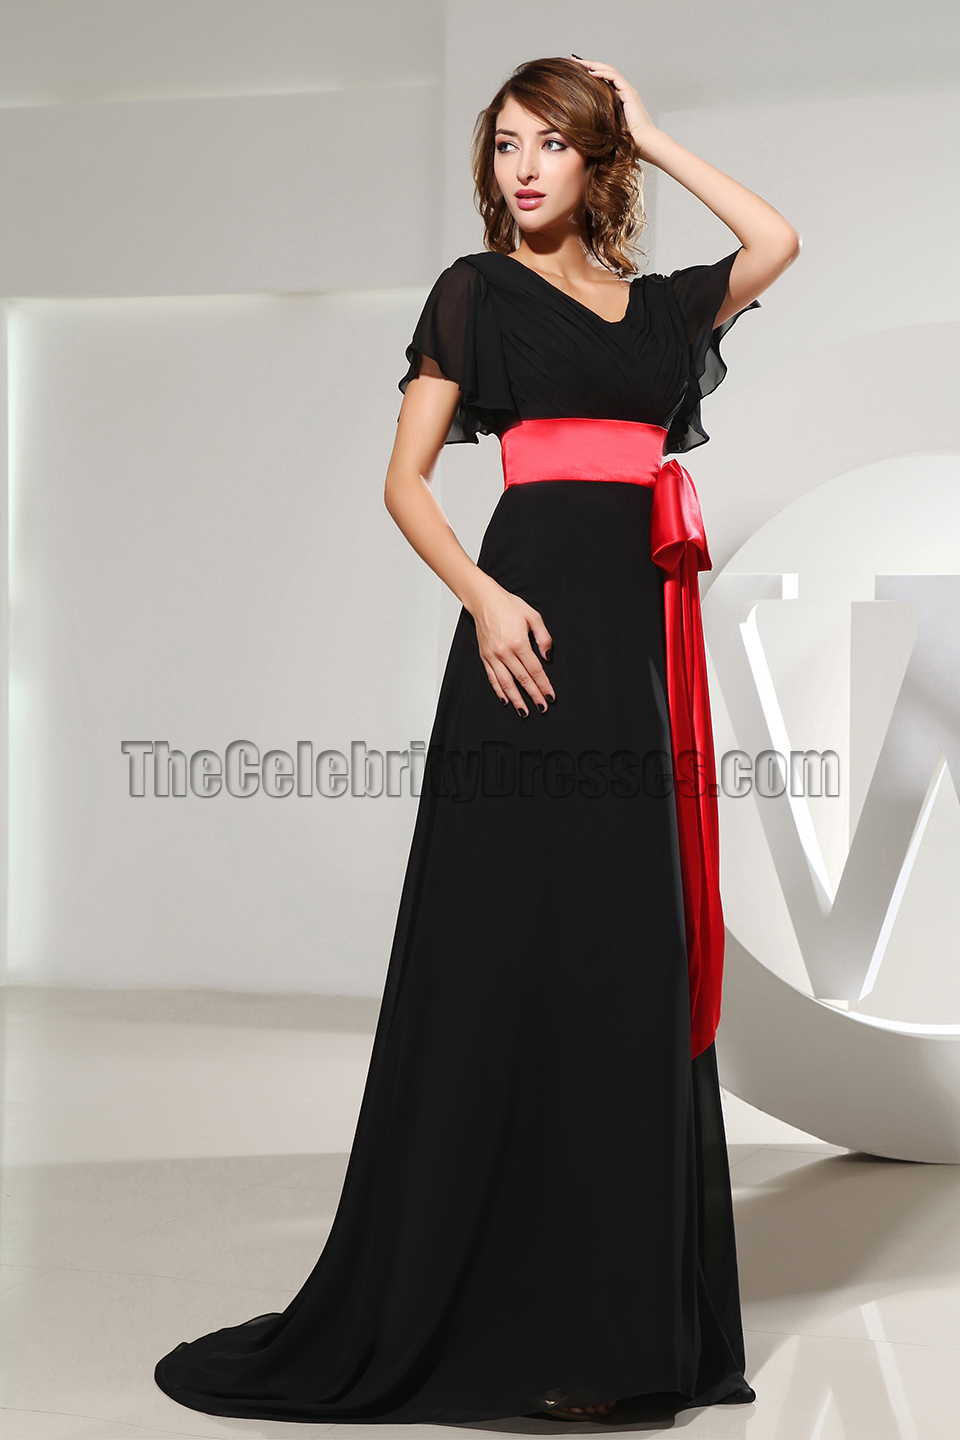 d2924c3a6d New Style Black V Neck Prom Evening Dresses With Red Belt